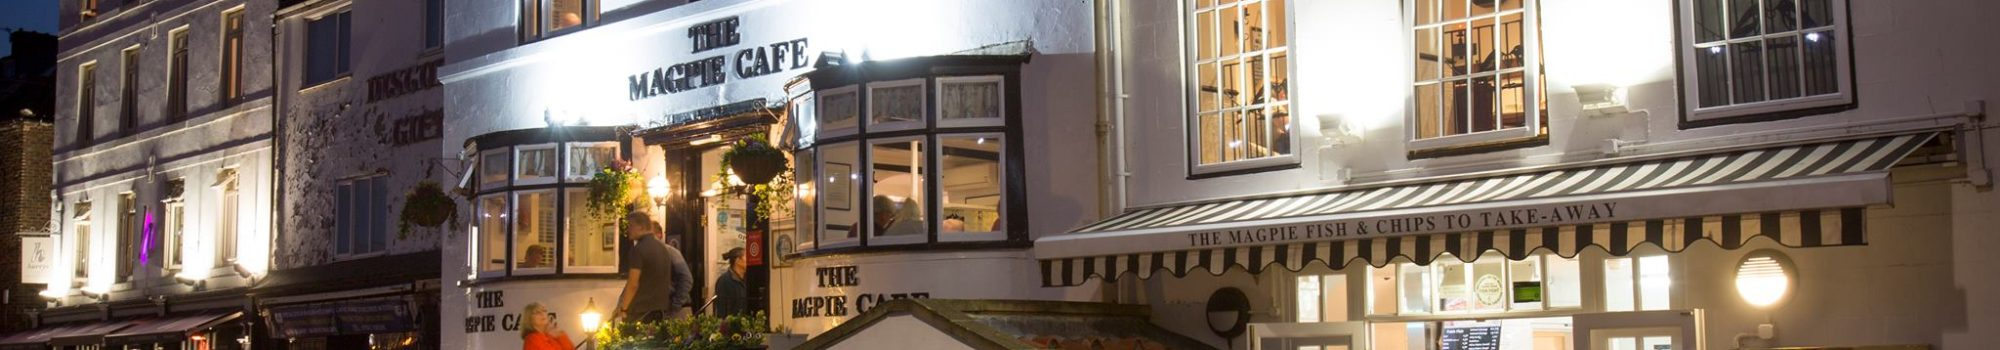 Magpie Cafe, Whitby. Fish and chips